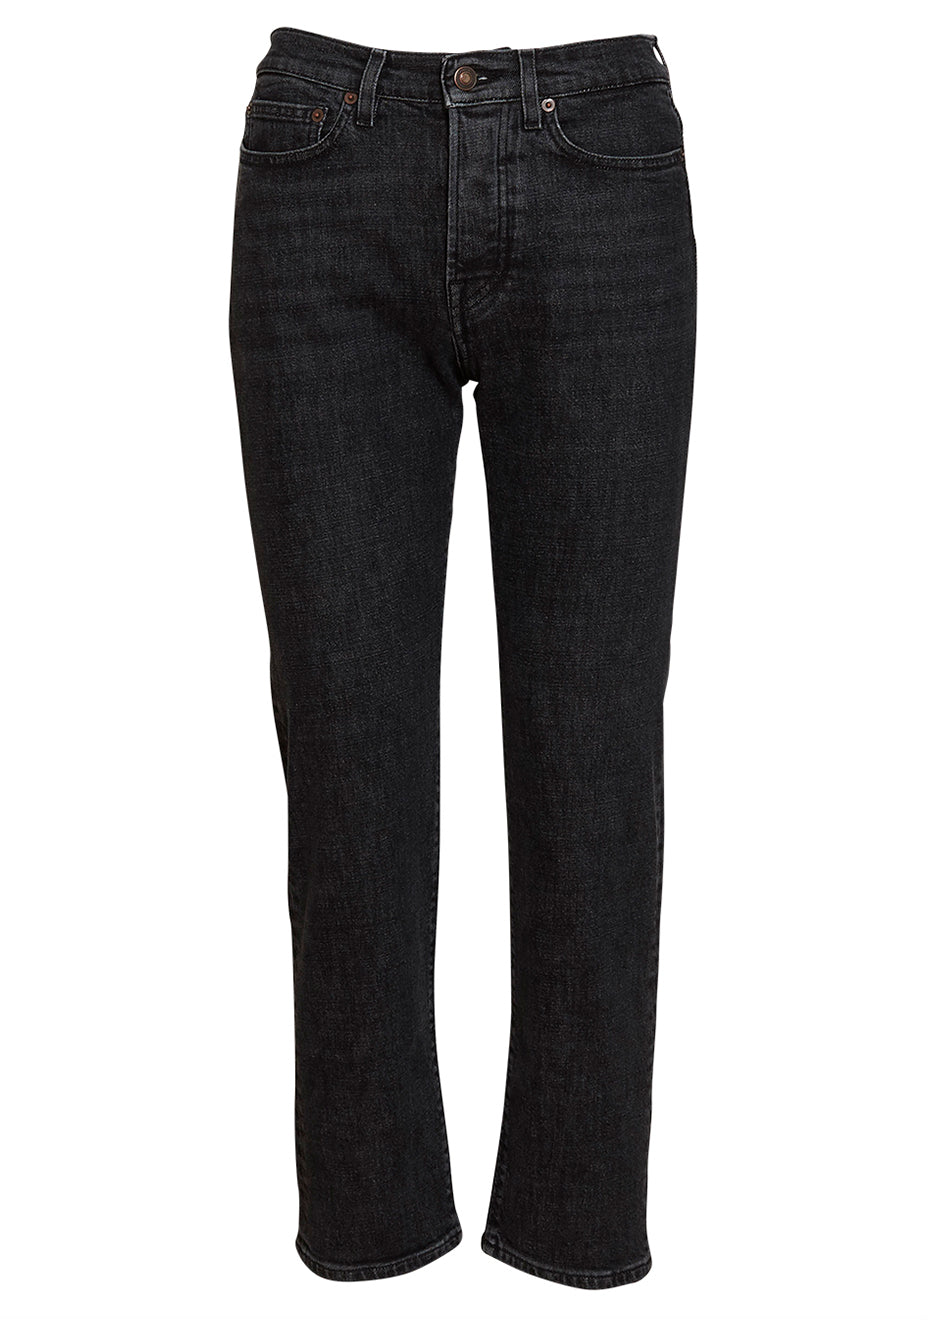 CW002 Black Stone Classic Fit Jeans